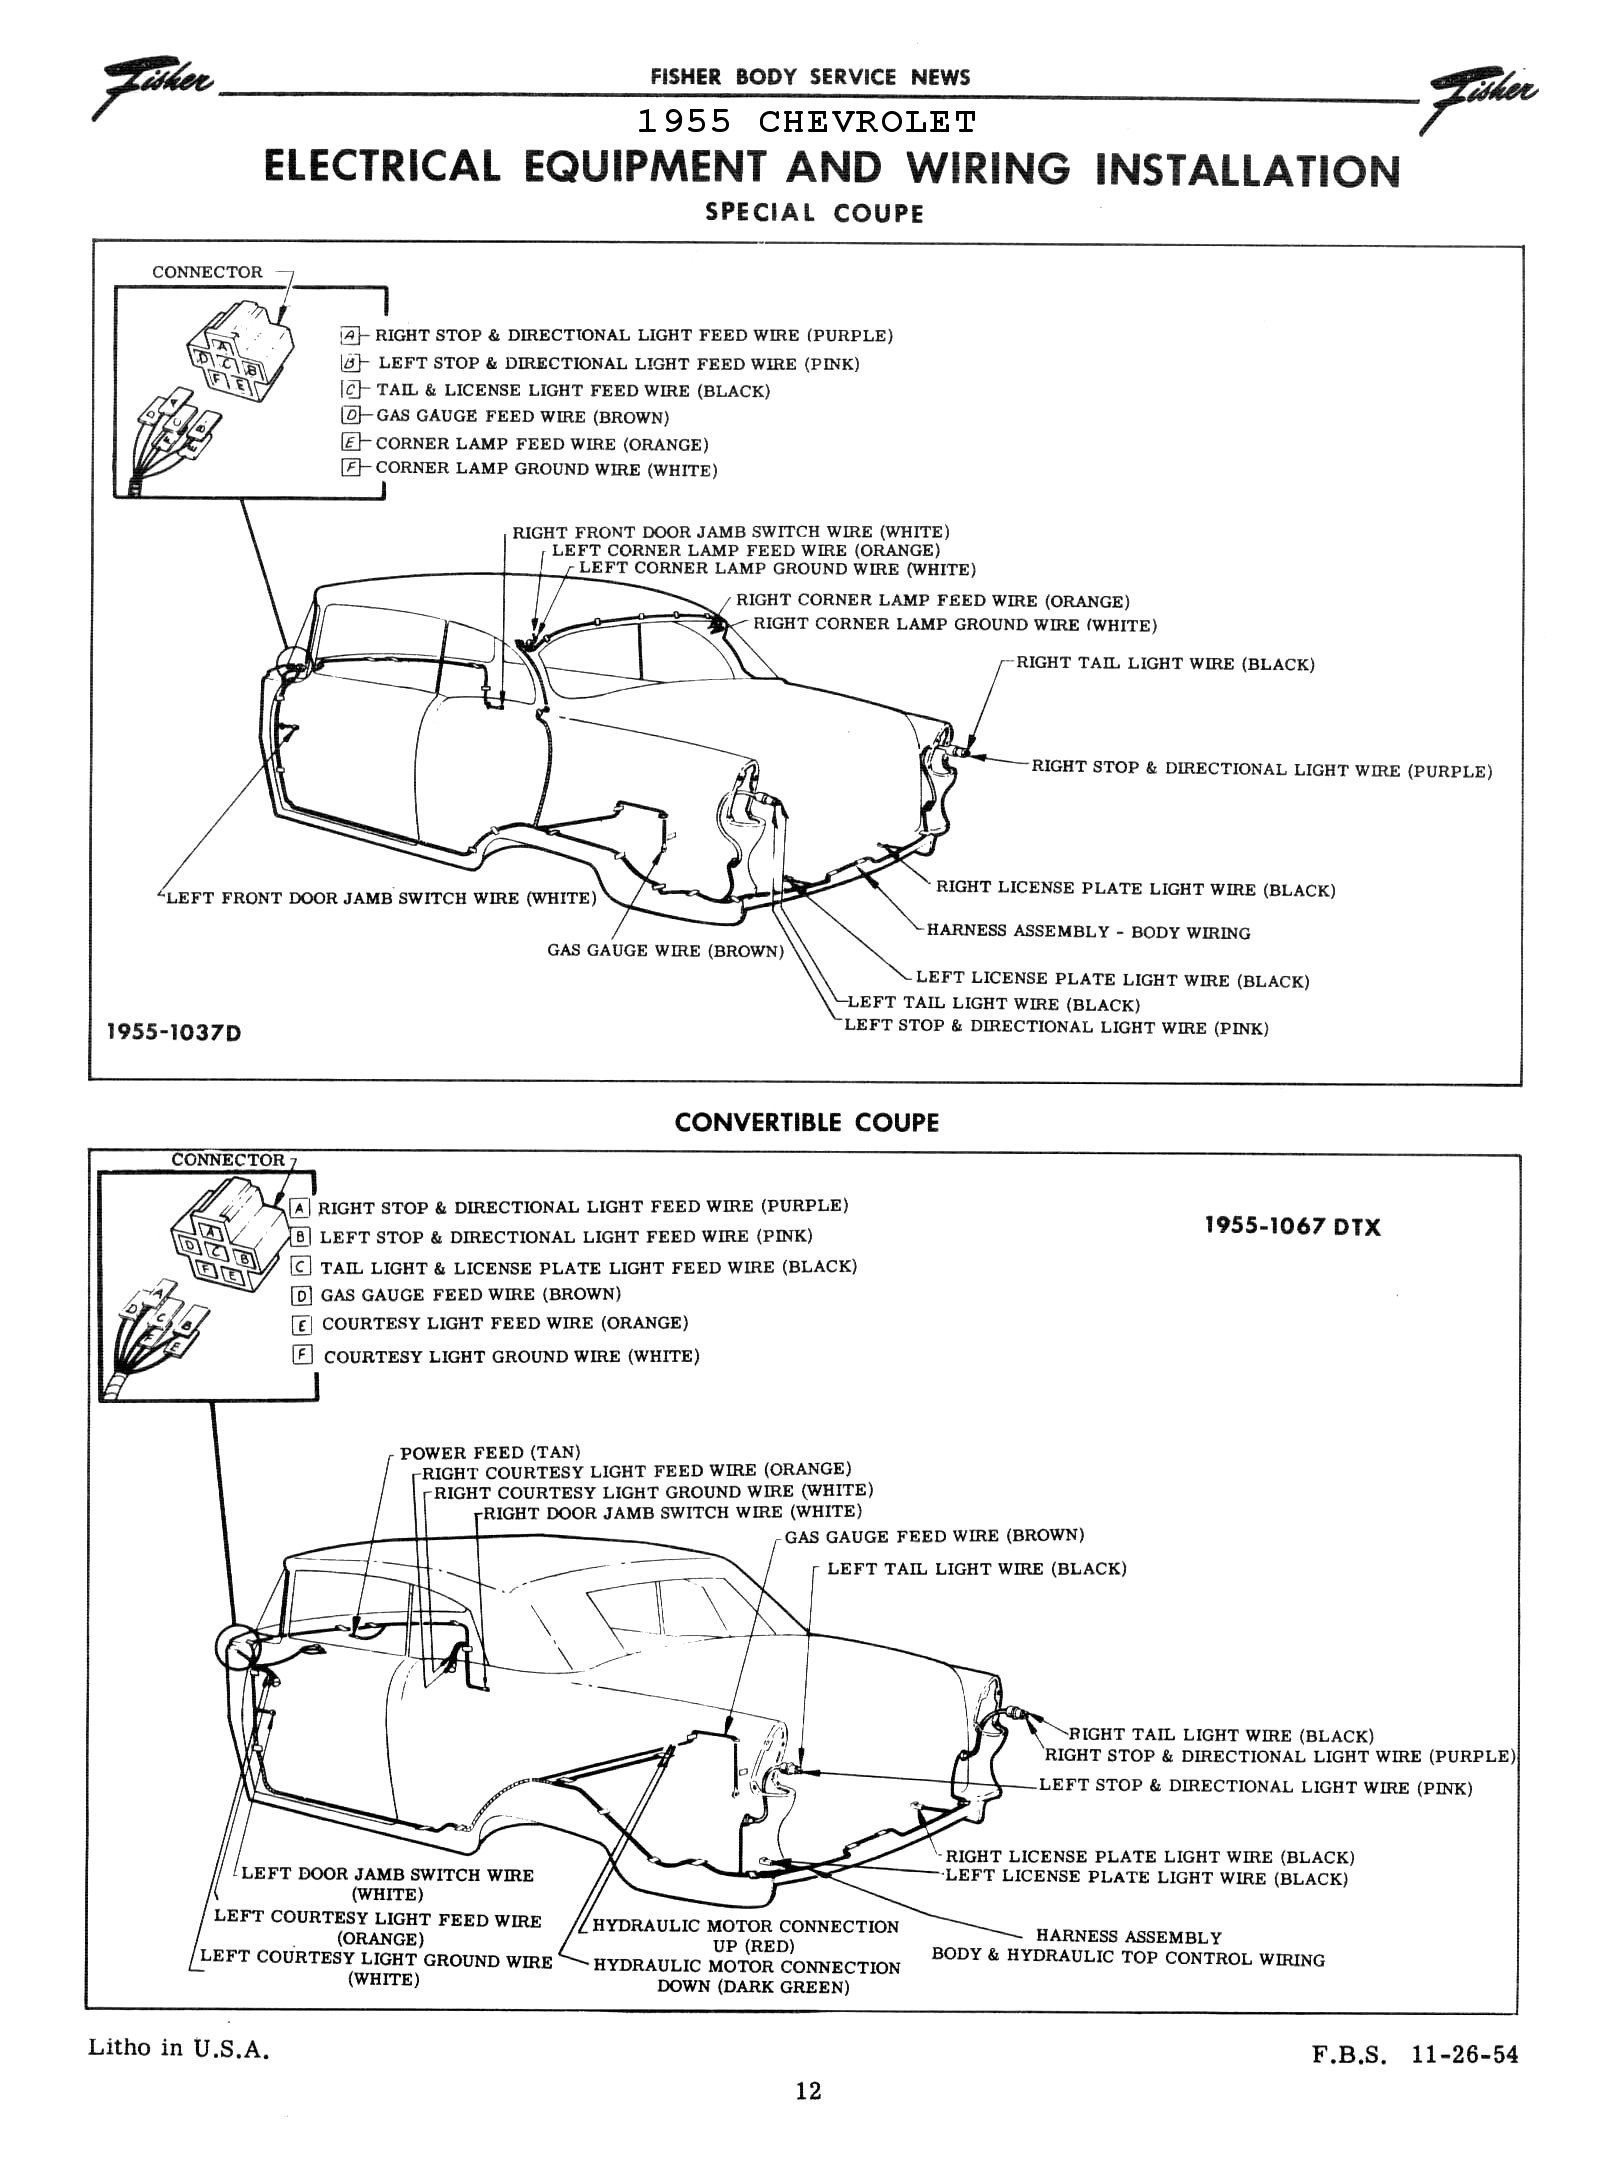 chevy wiring diagrams rh chevy oldcarmanualproject com 1956 chevy bel air wiring diagram 1956 chevrolet truck wiring diagram